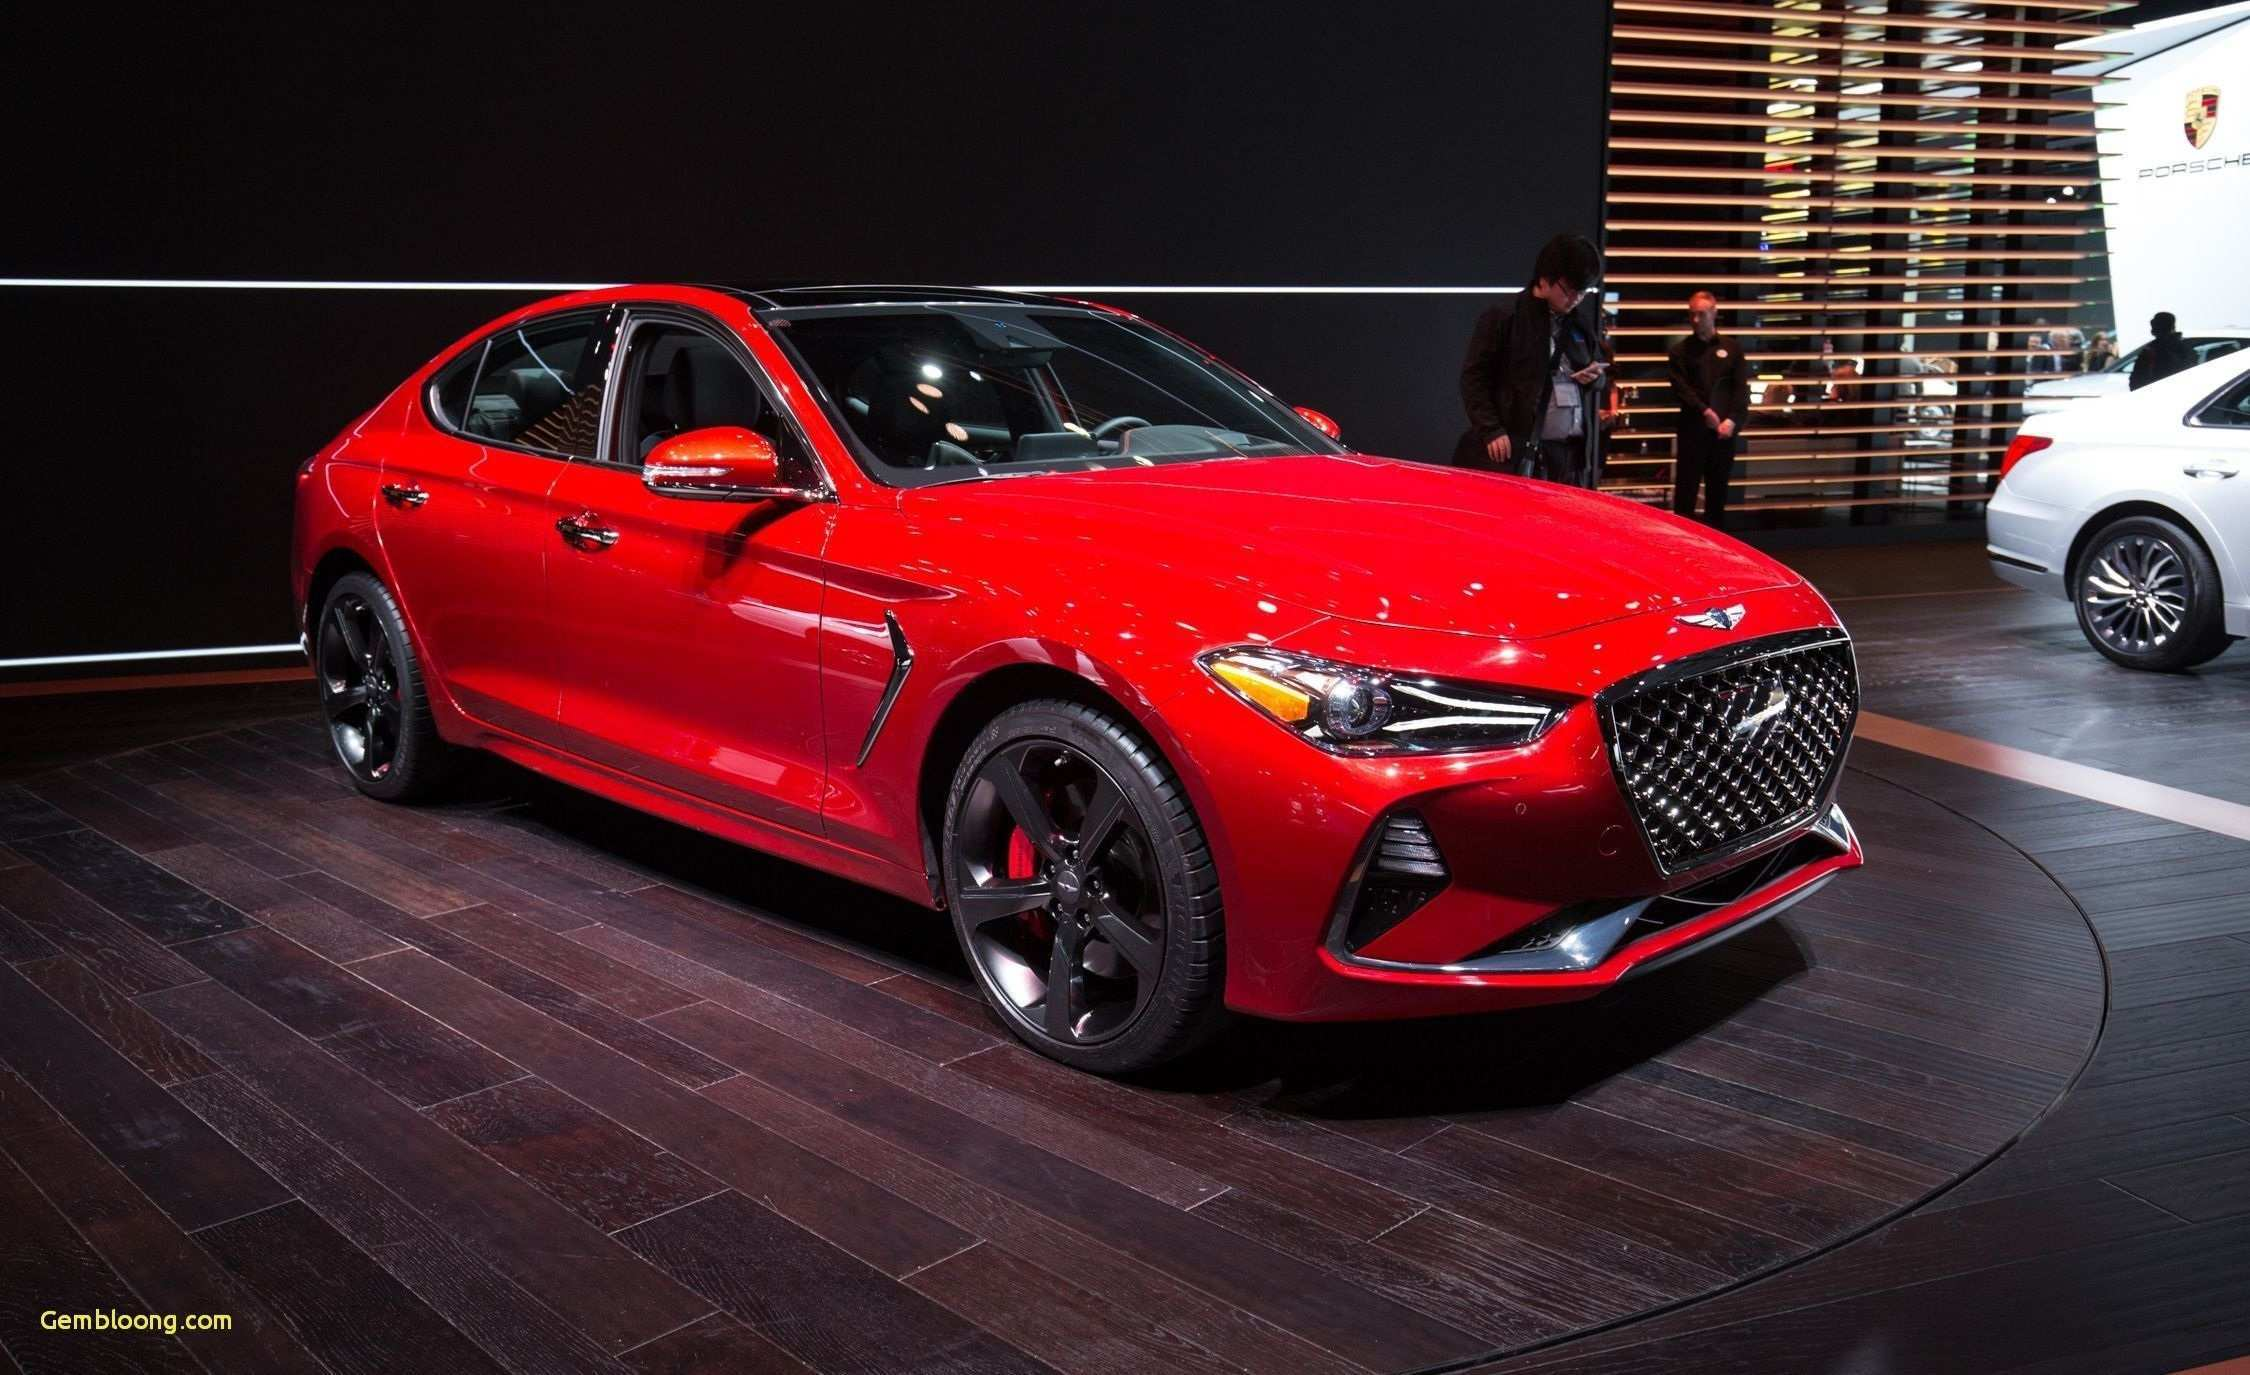 46 The 2020 Hyundai Genesis Coupe Specs And Review